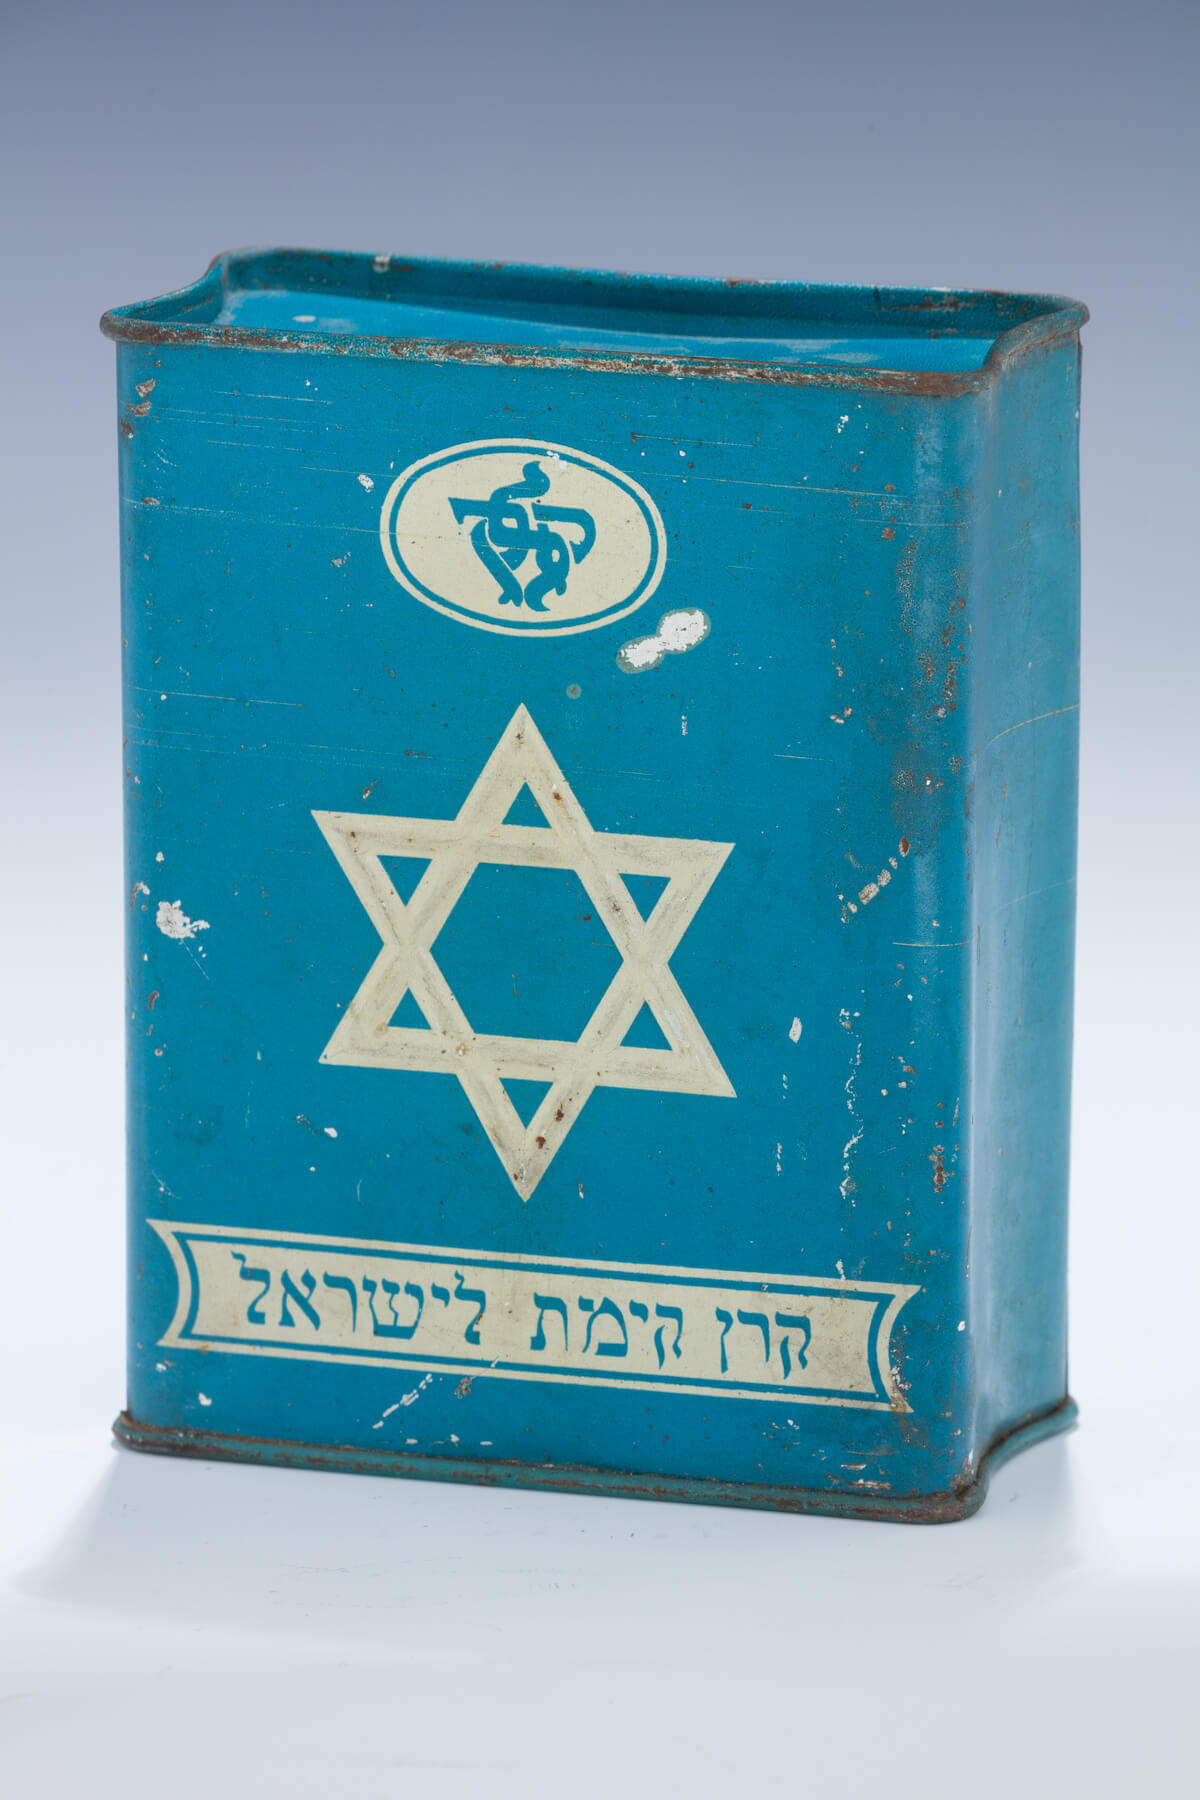 019. A Large Tin Jnf Collection Box